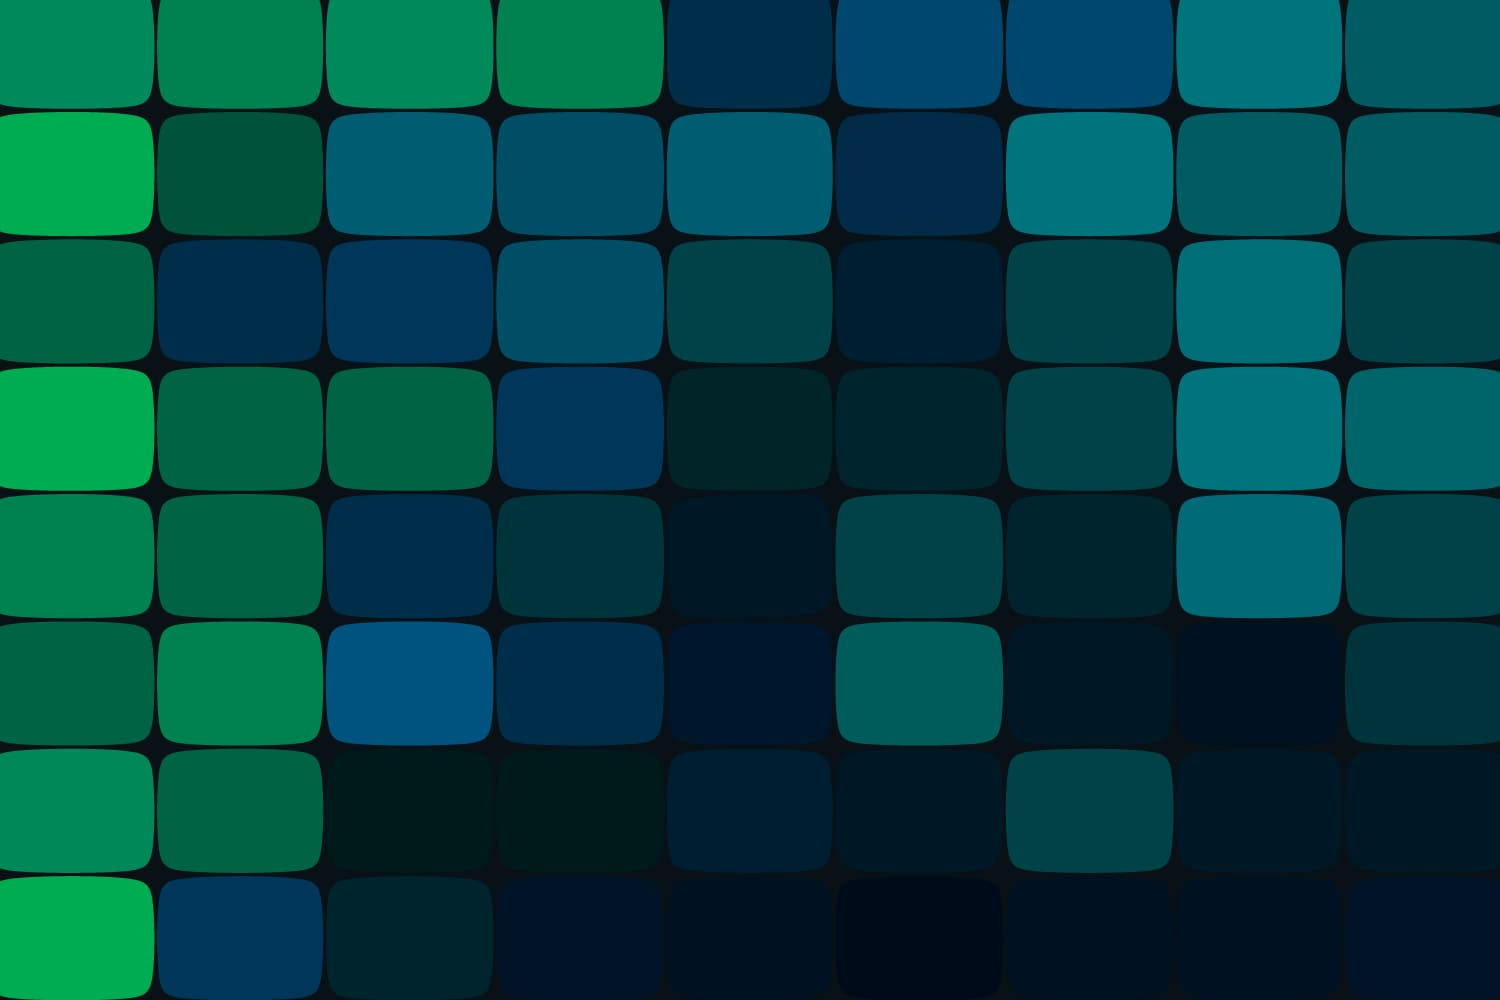 Green and blue blocks stacked in rows